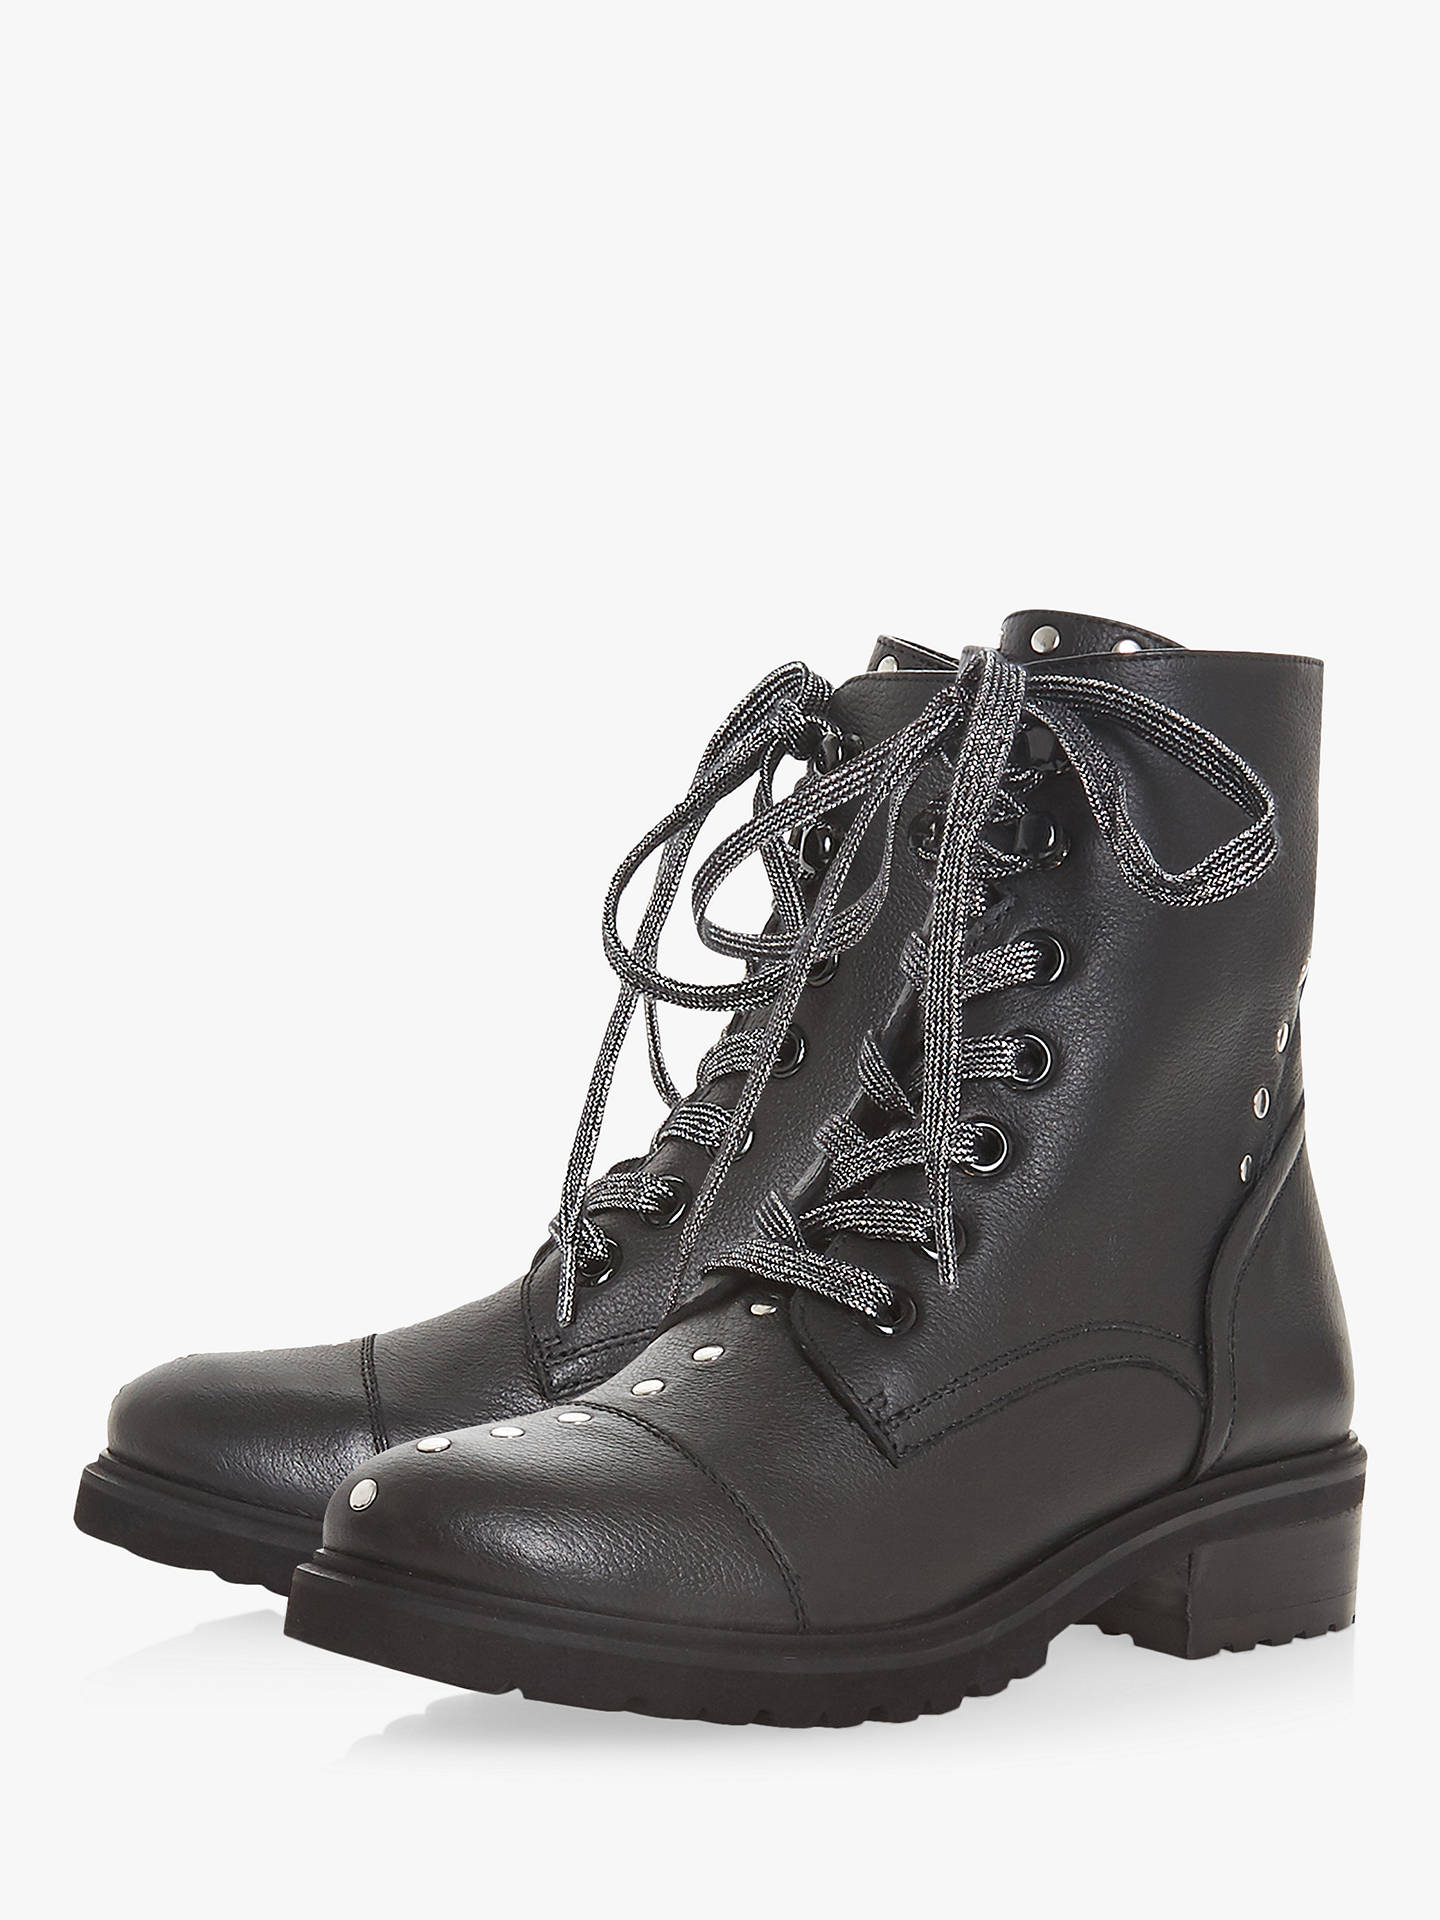 Buy Steve Madden Irofi Lace Up Ankle Boots, Black Leather, 3 Online at johnlewis.com